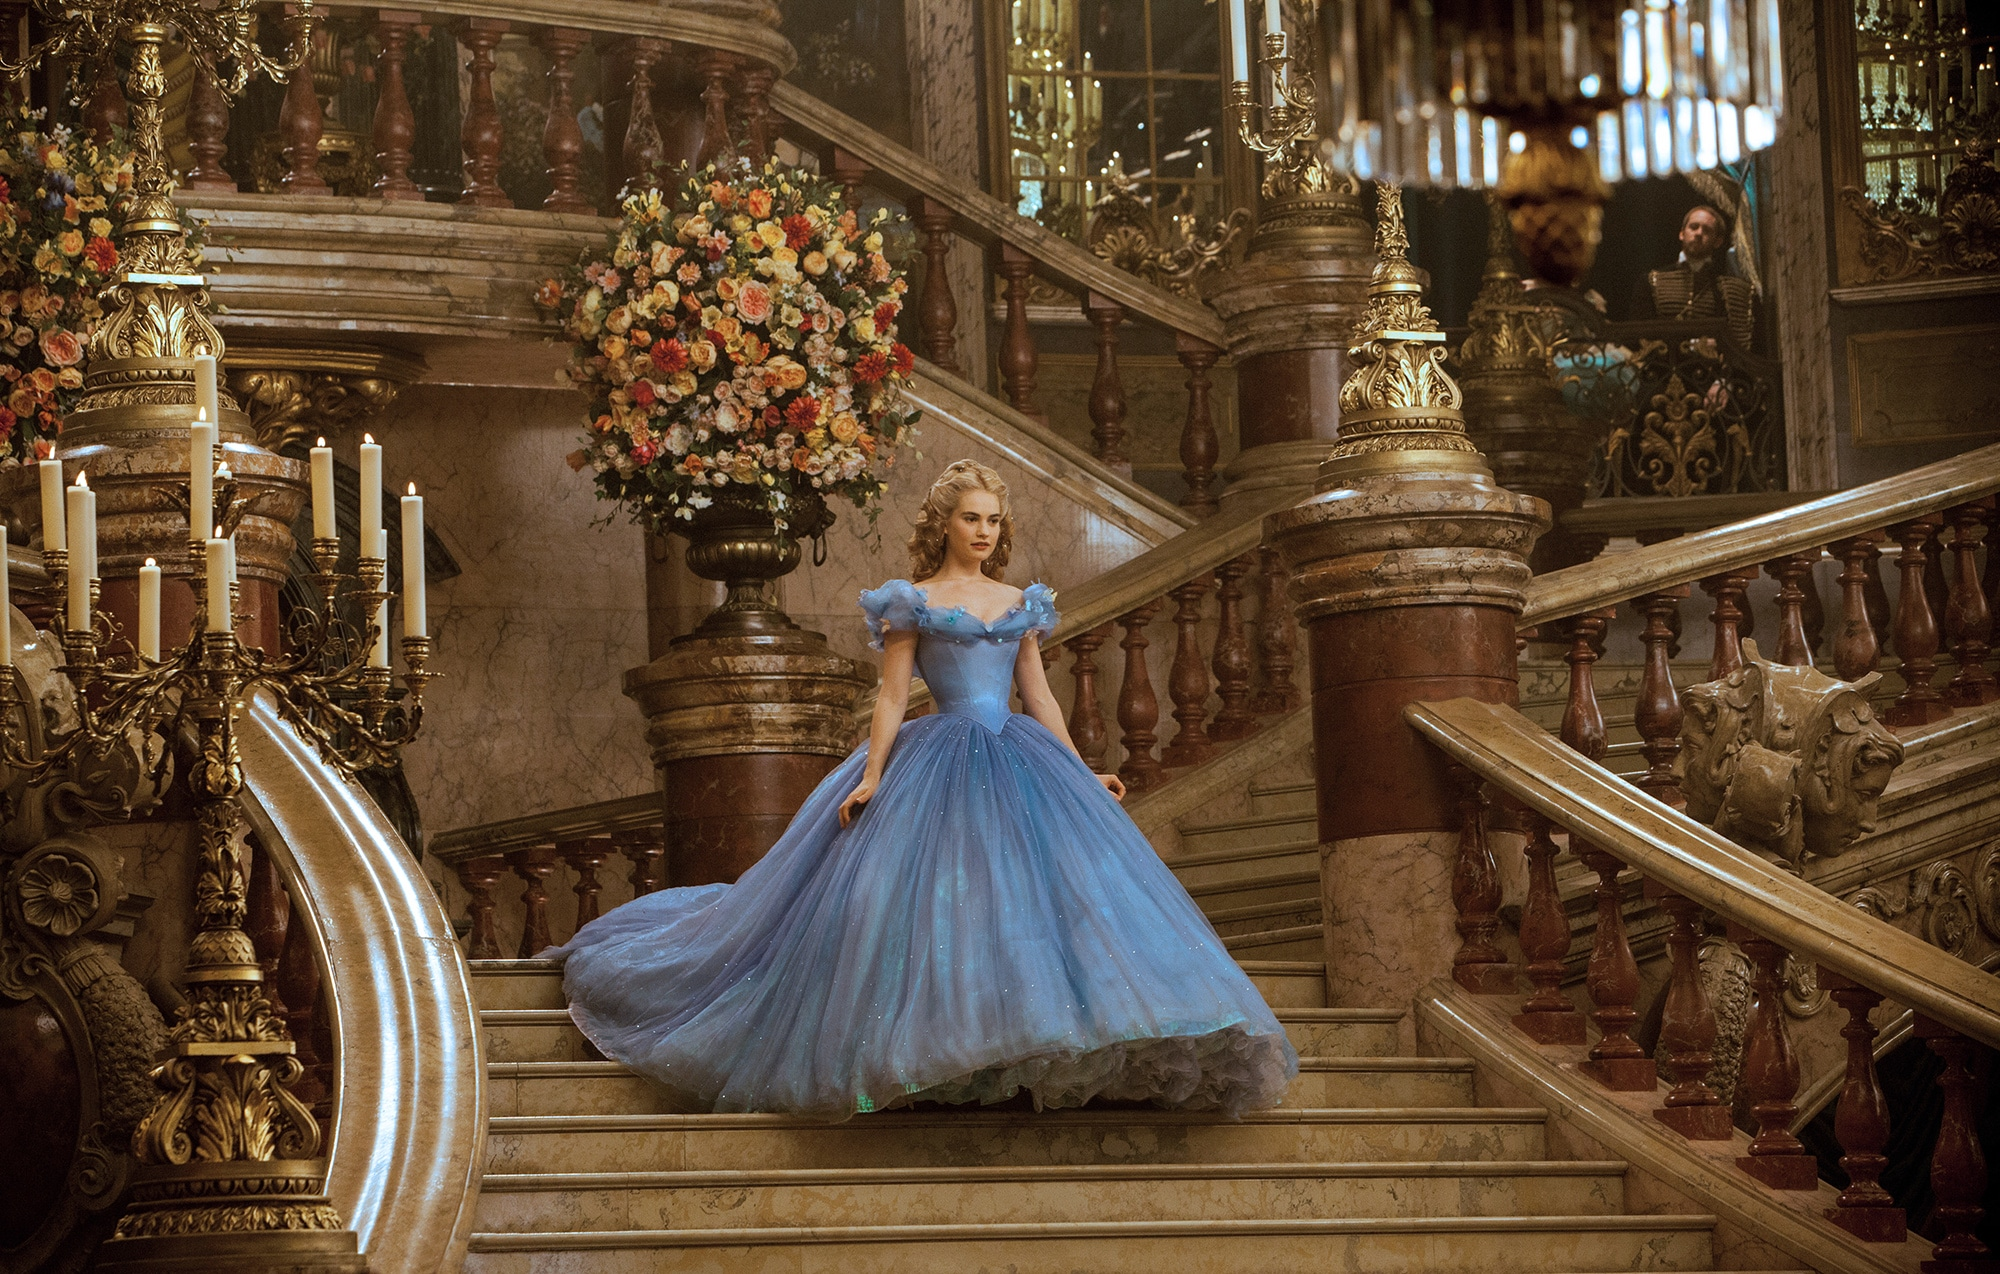 Contrasting the 19th century dresses in France, Cinderella's ball gown had no drapes or loops on the back